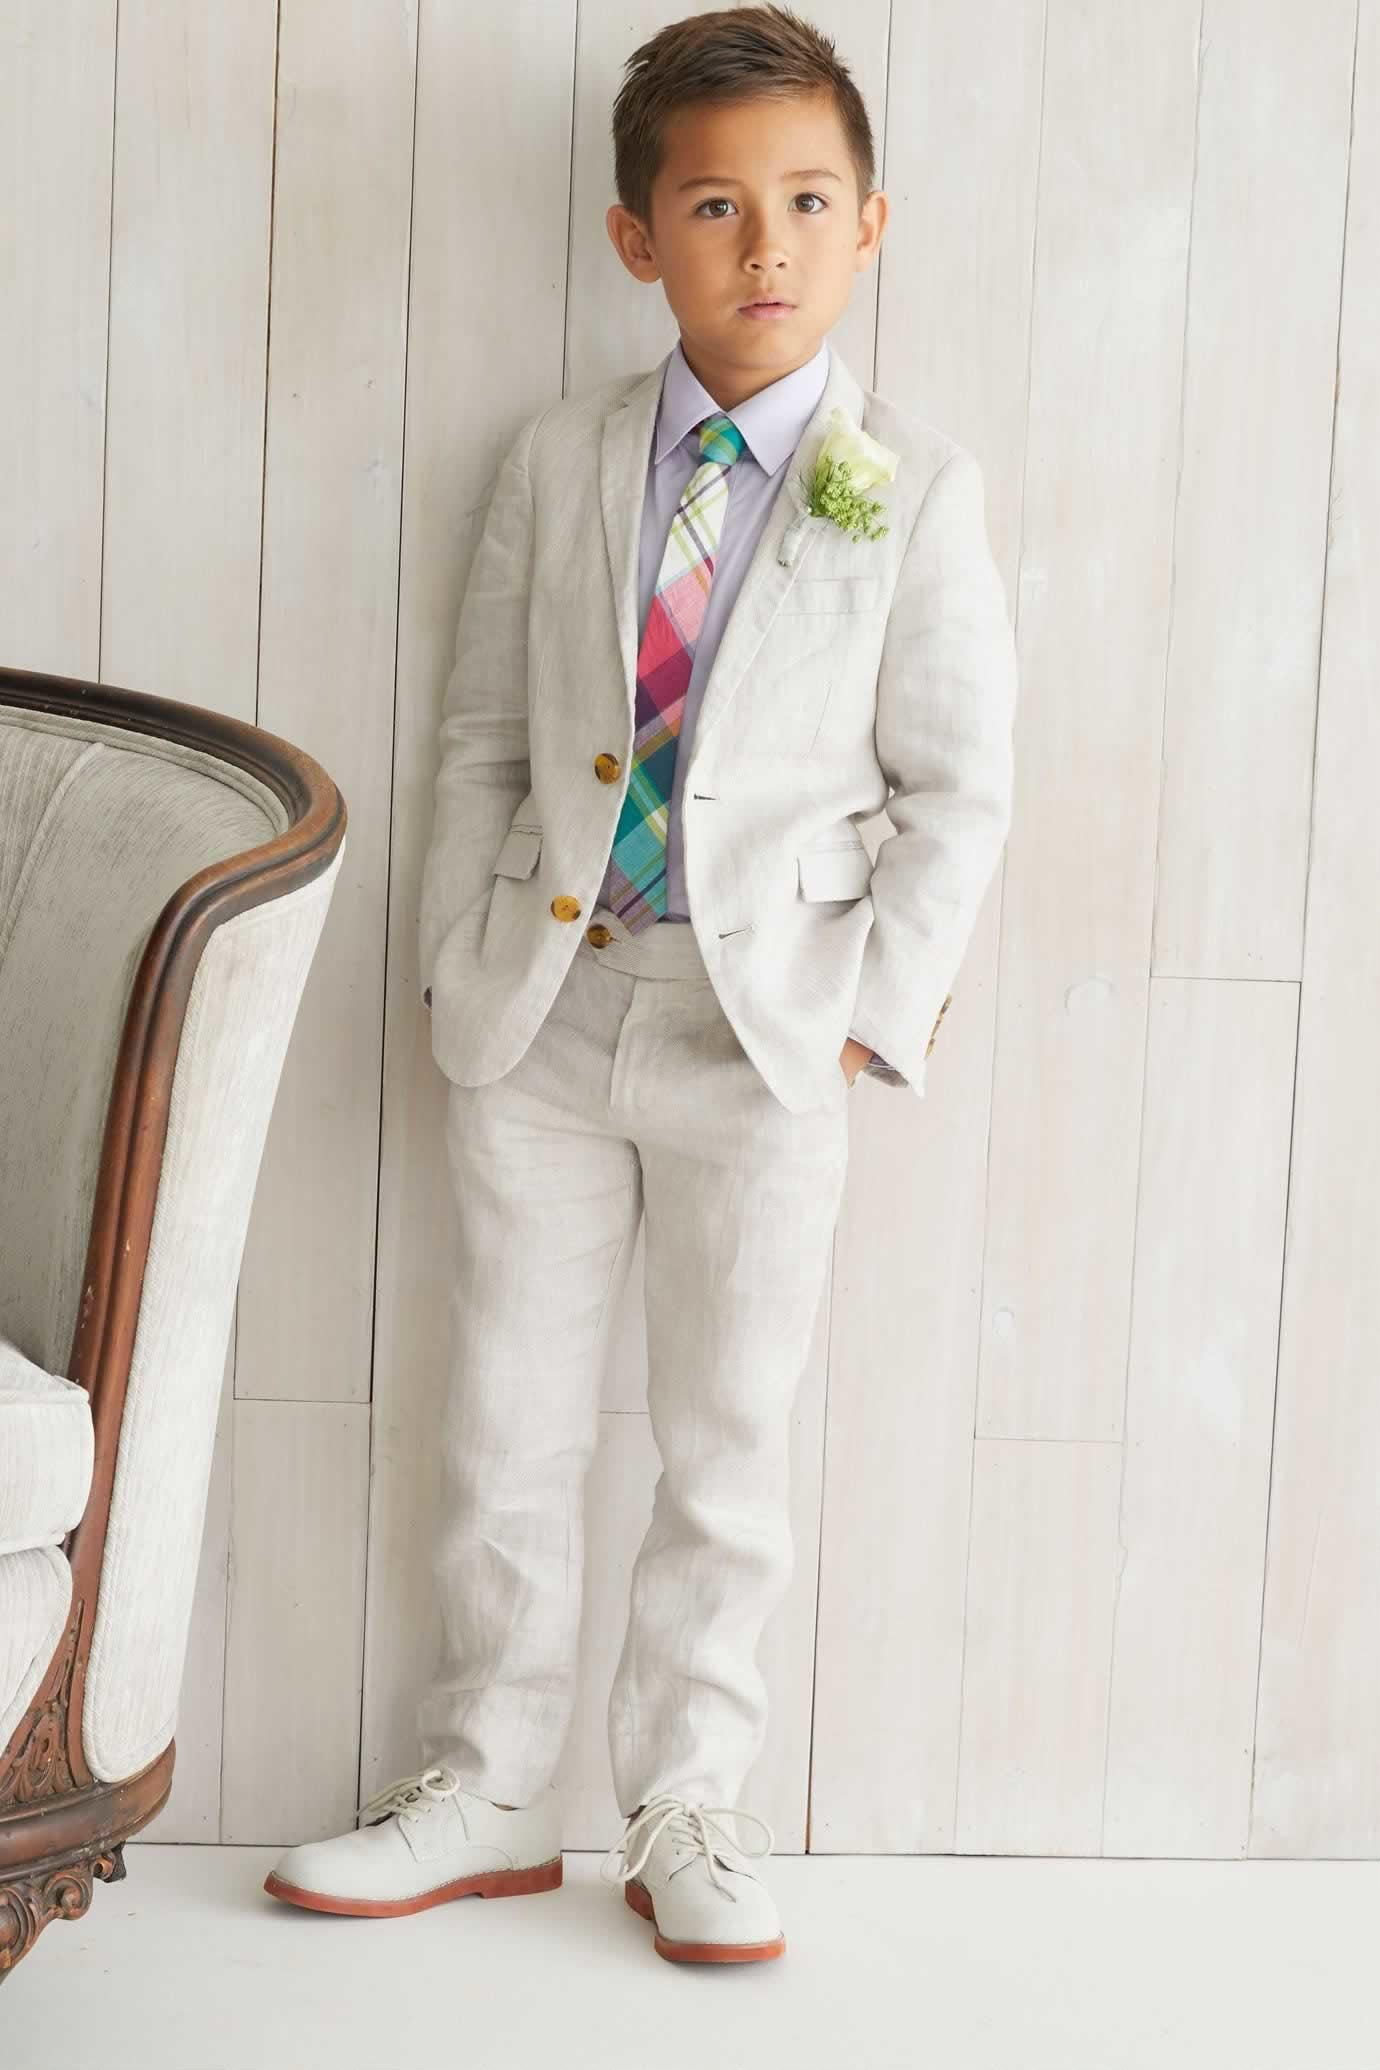 fdff742fe Dress your dapper son in a sharp suit for Easter or any special occasion  this spring!